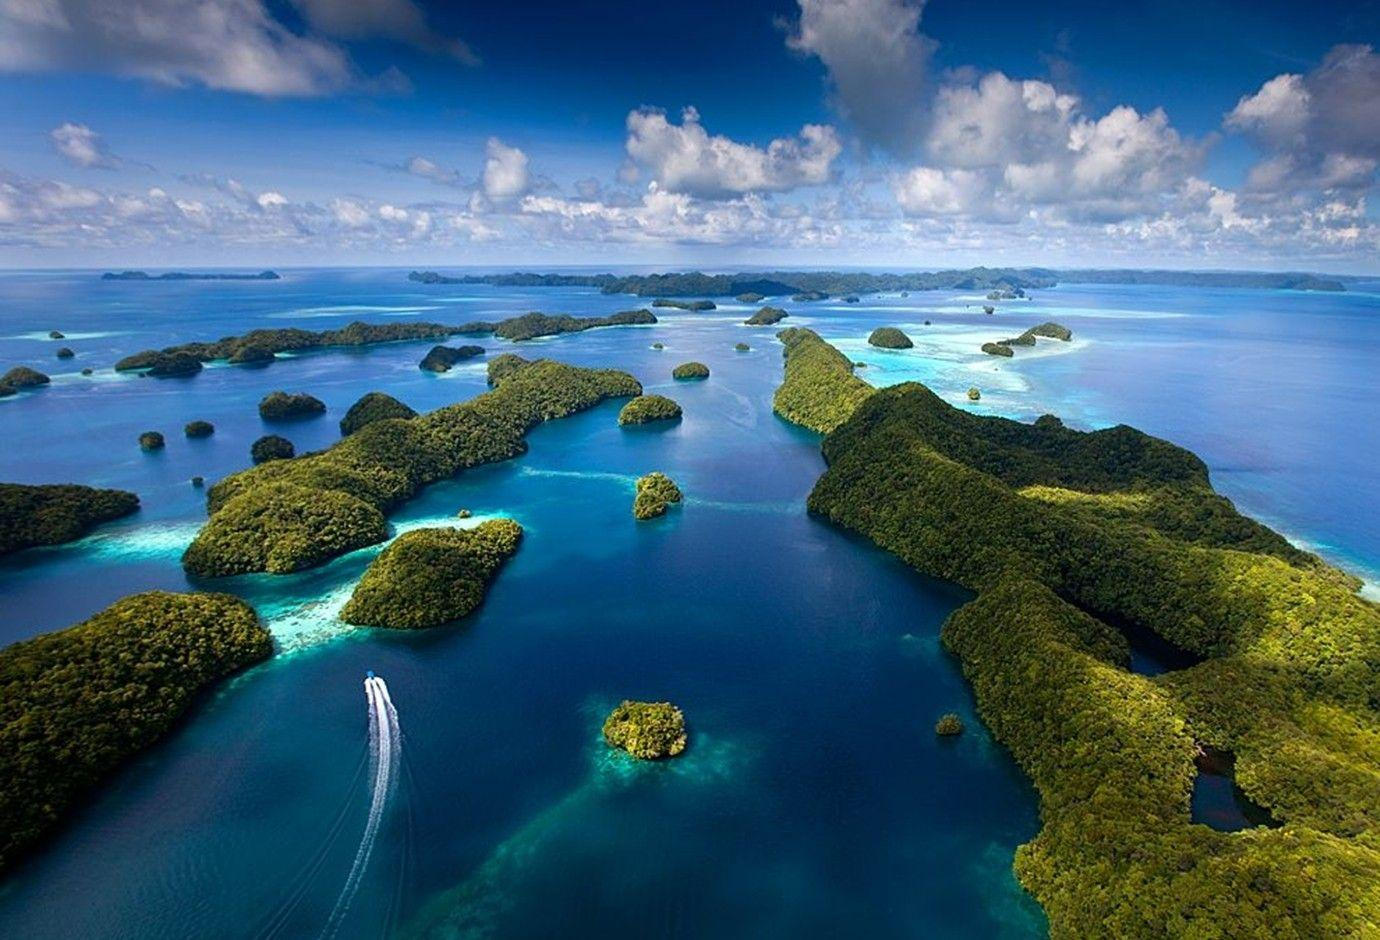 Palau Tag wallpapers: Palau Islands Ocean Reef Desktop Background ...